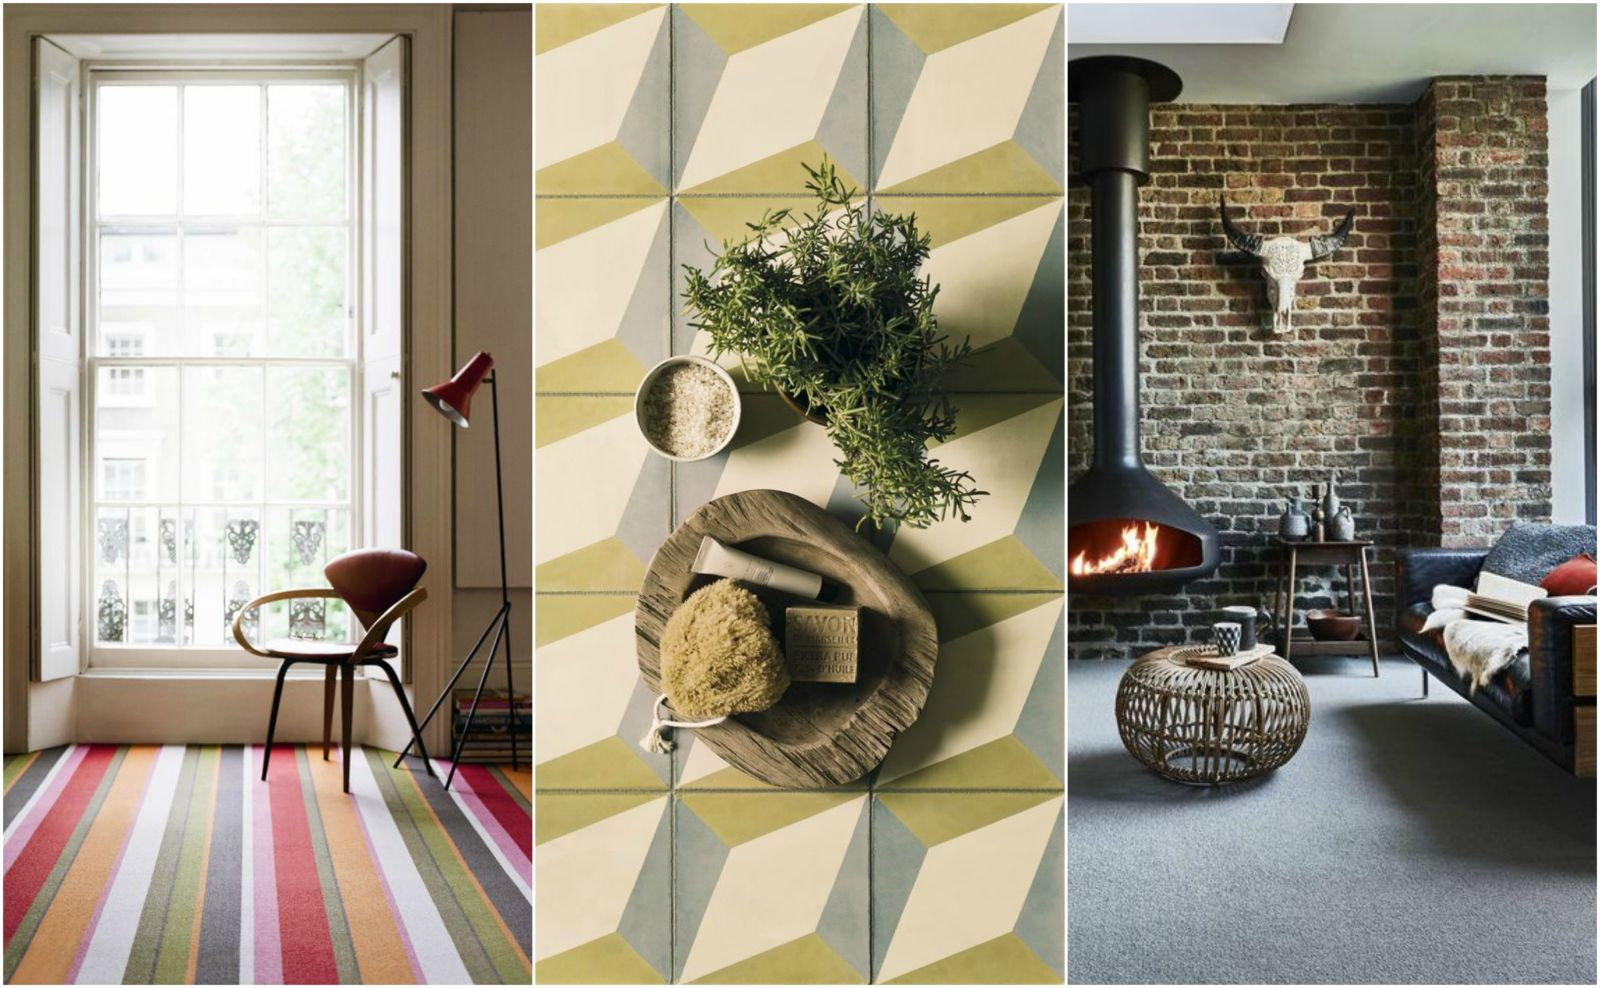 Interior design for our home - Achieve A Fabulous Look With The Latest Flooring Trends With Ideas To Suit Every Room Of